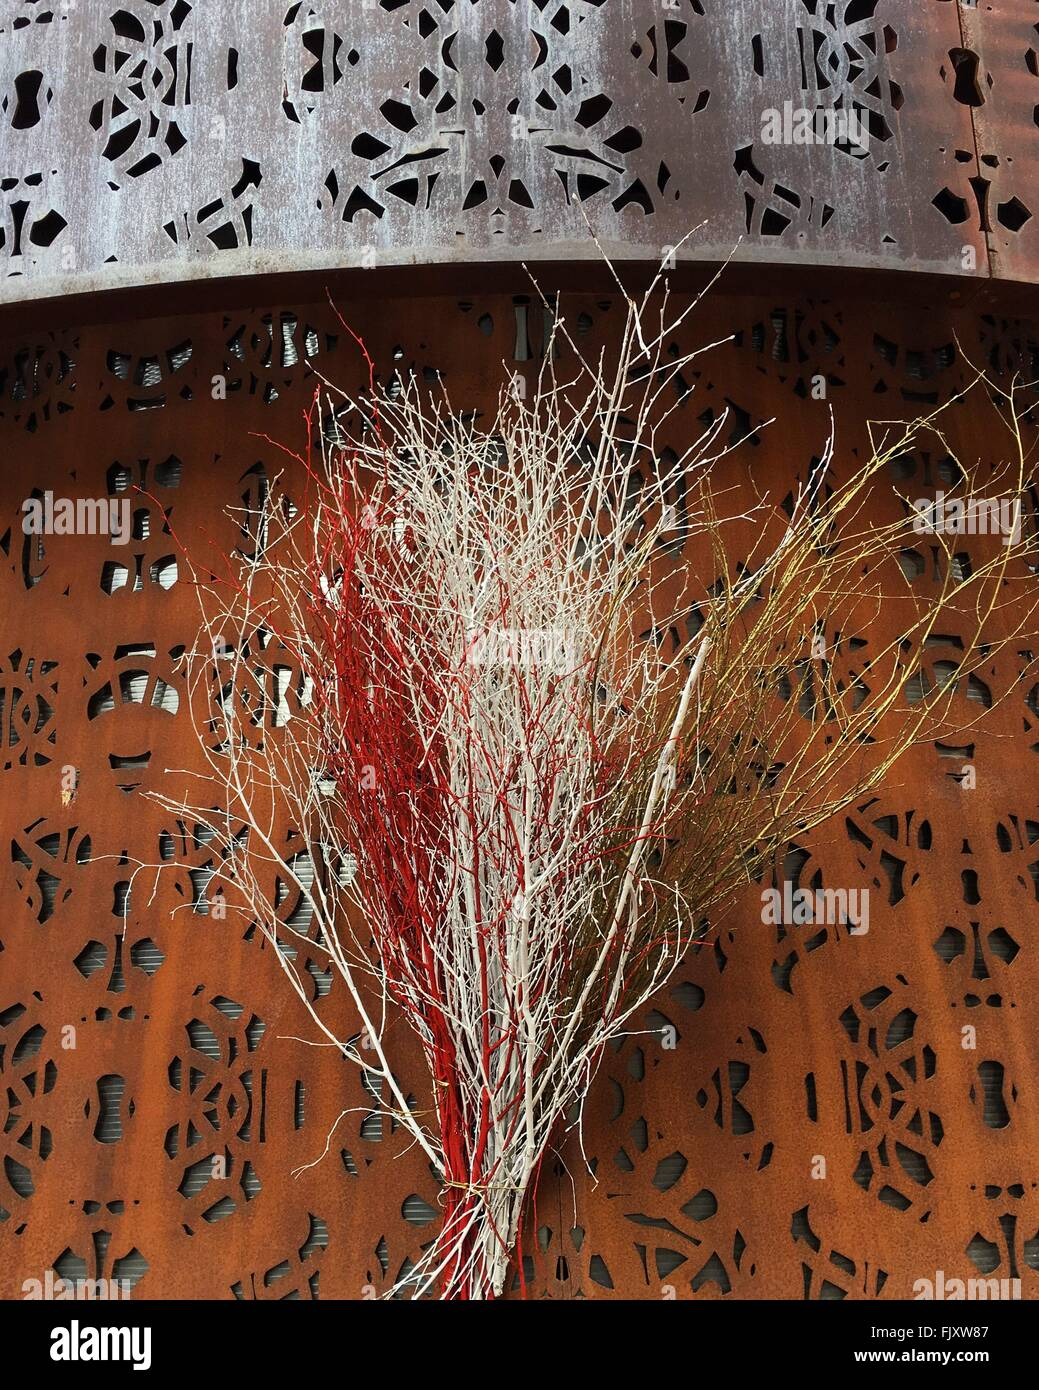 Bare Branches Against Patterned Wall - Stock Image